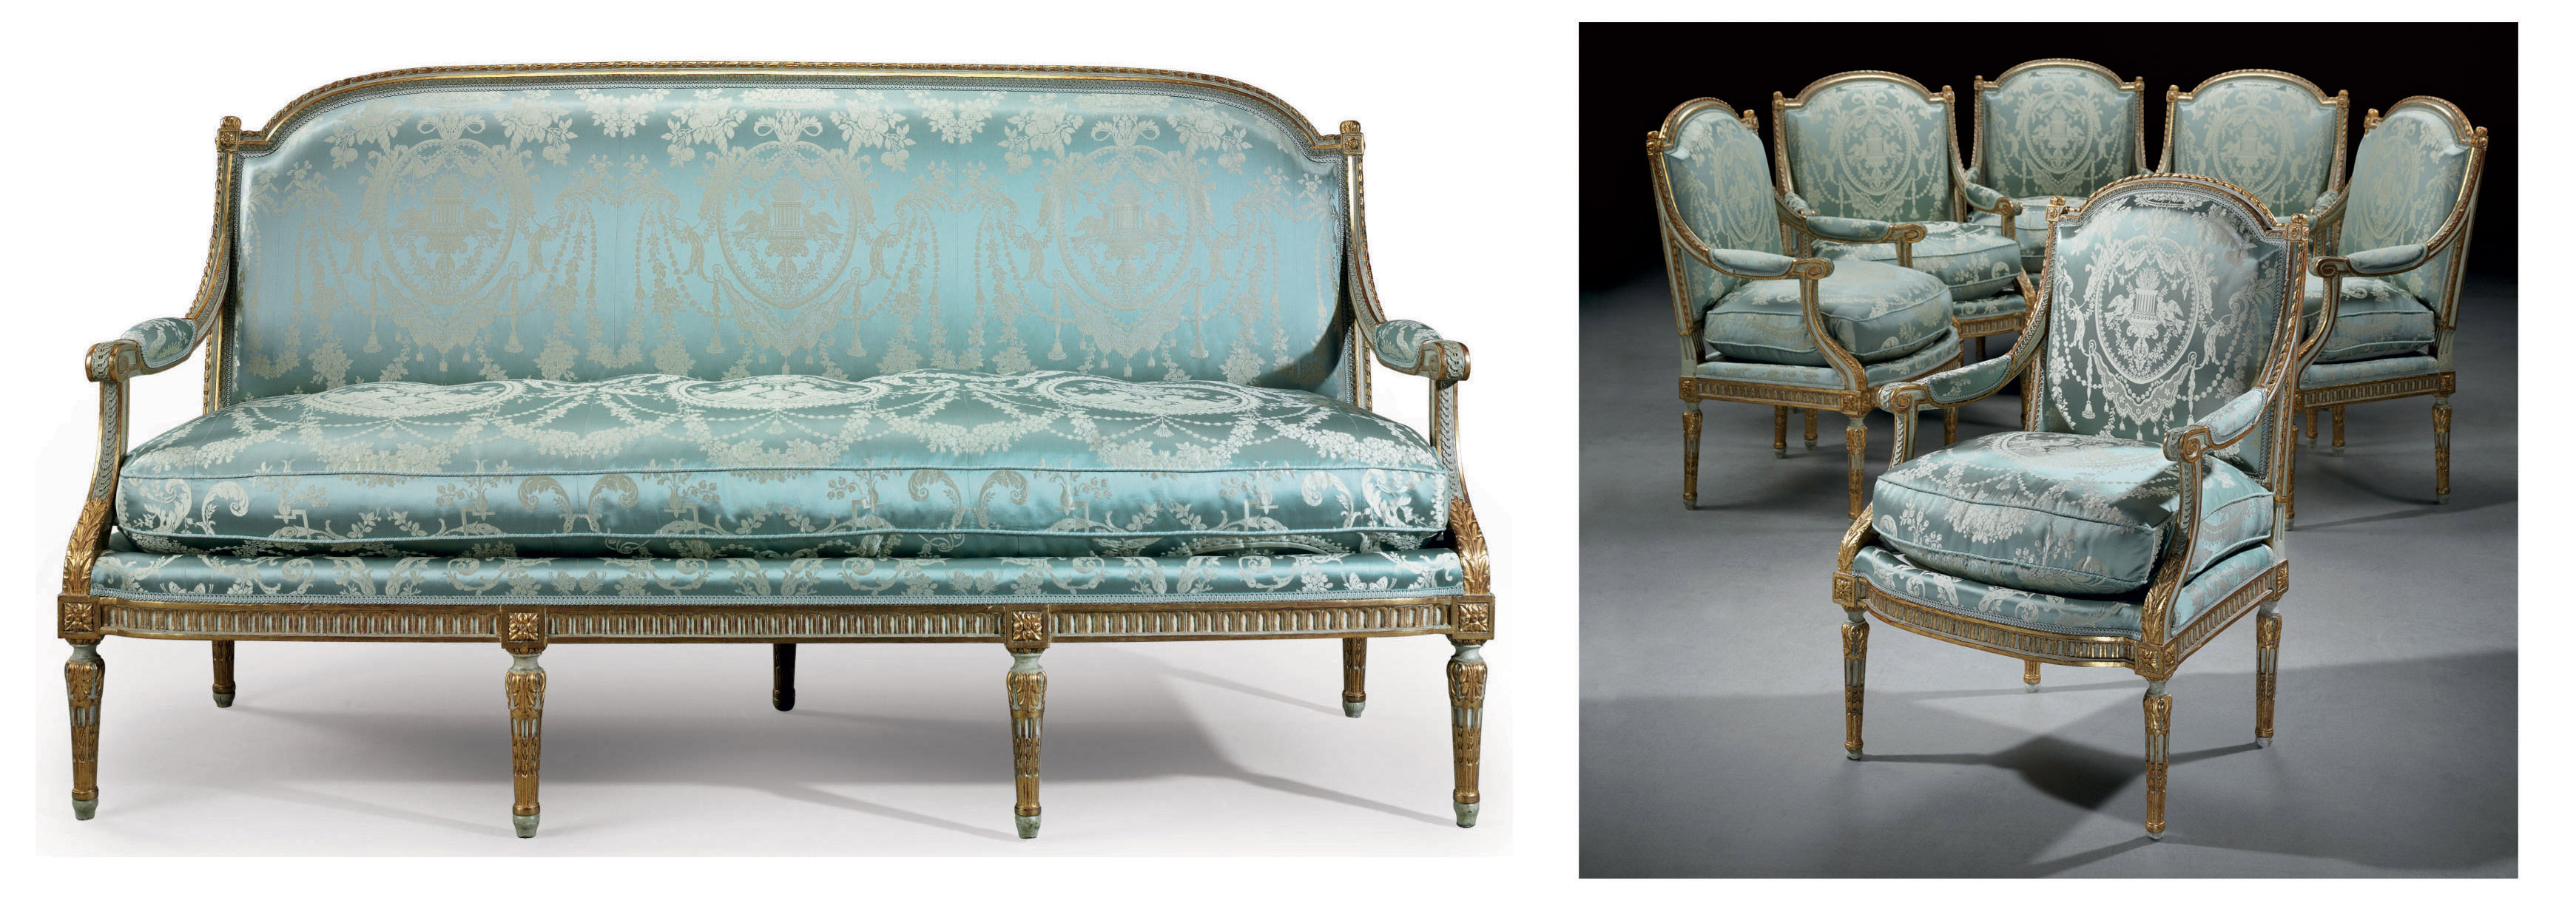 A SUITE OF LOUIS XVI WHITE-PAINTED AND PARCEL-GILT SEAT FURNITURE